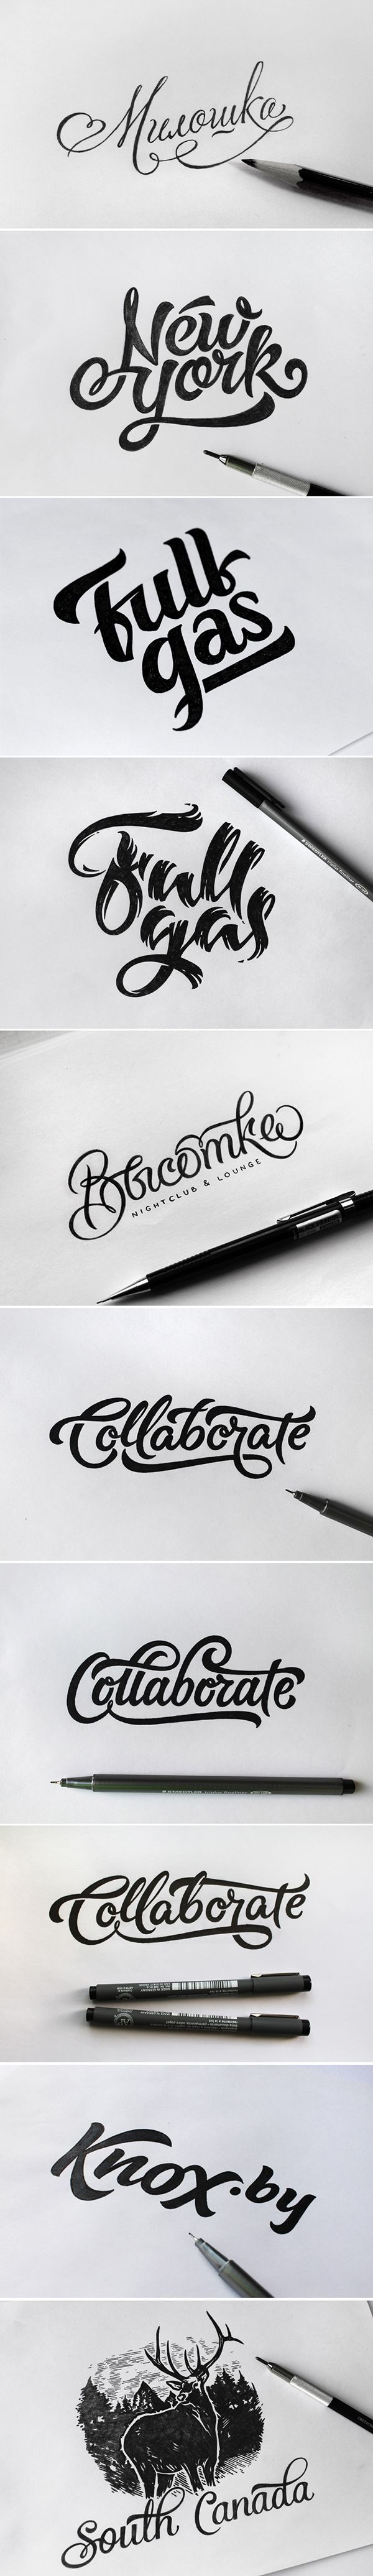 A whole collection of what look like logos. All I know is they look cool, and handmade.